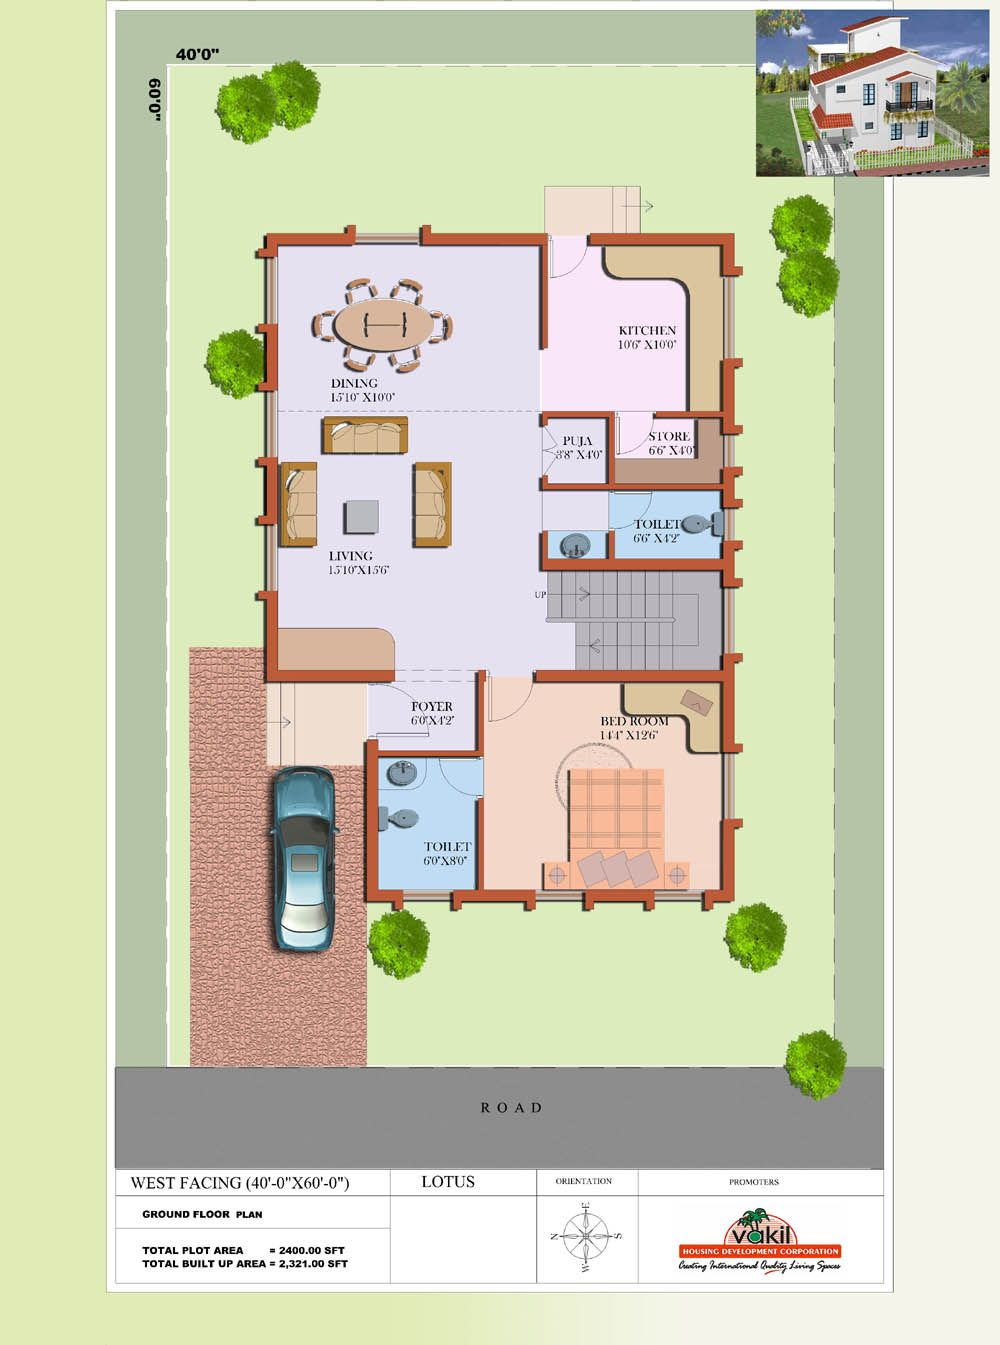 Bedroom Vastu House Plan For Home Design Shastra Top Ch Free Kerala Plans As Per Vasthu Photos Jpg 100 West Facing House House Floor Design South Facing House